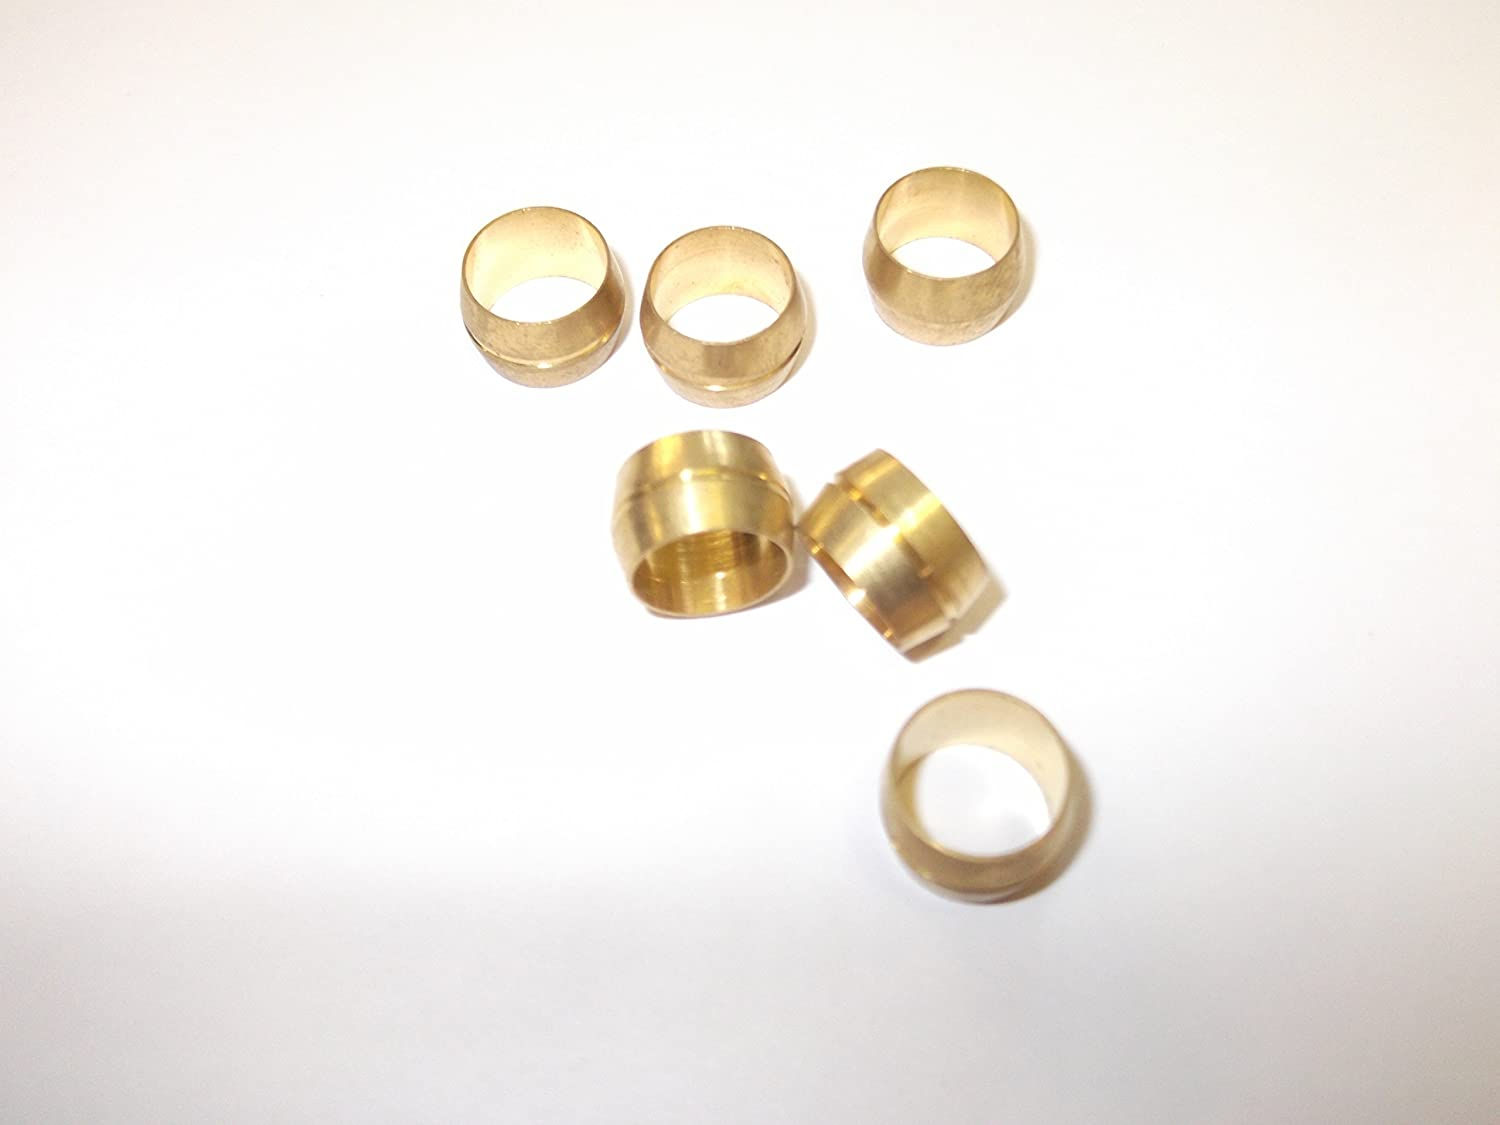 6 x 20mm Brass Olives Compression Pipe Fitting Metric Taps Sink Bath Shower